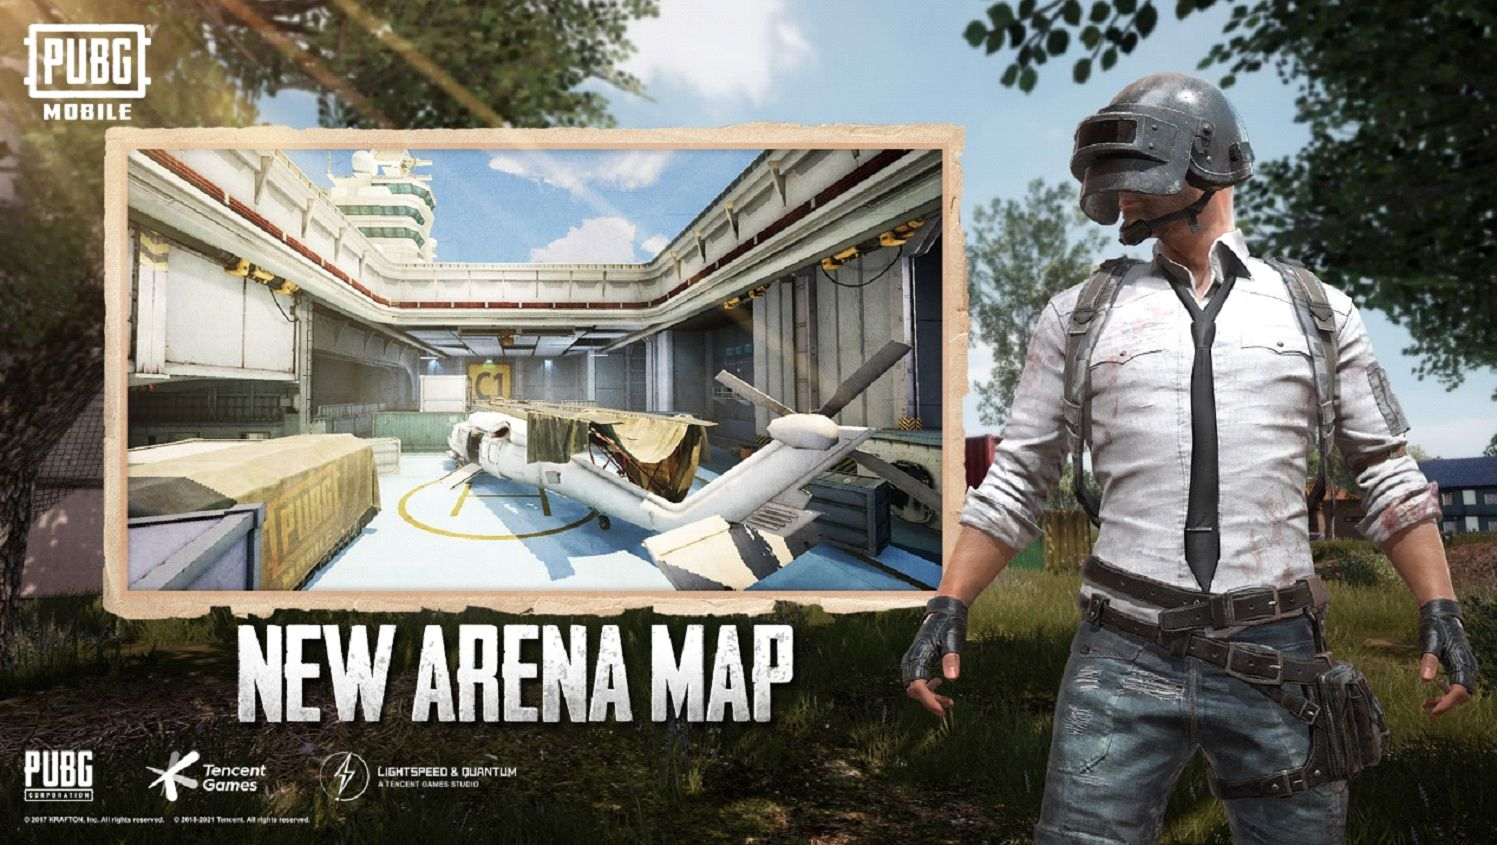 New TDM Map in Pubg Mobile